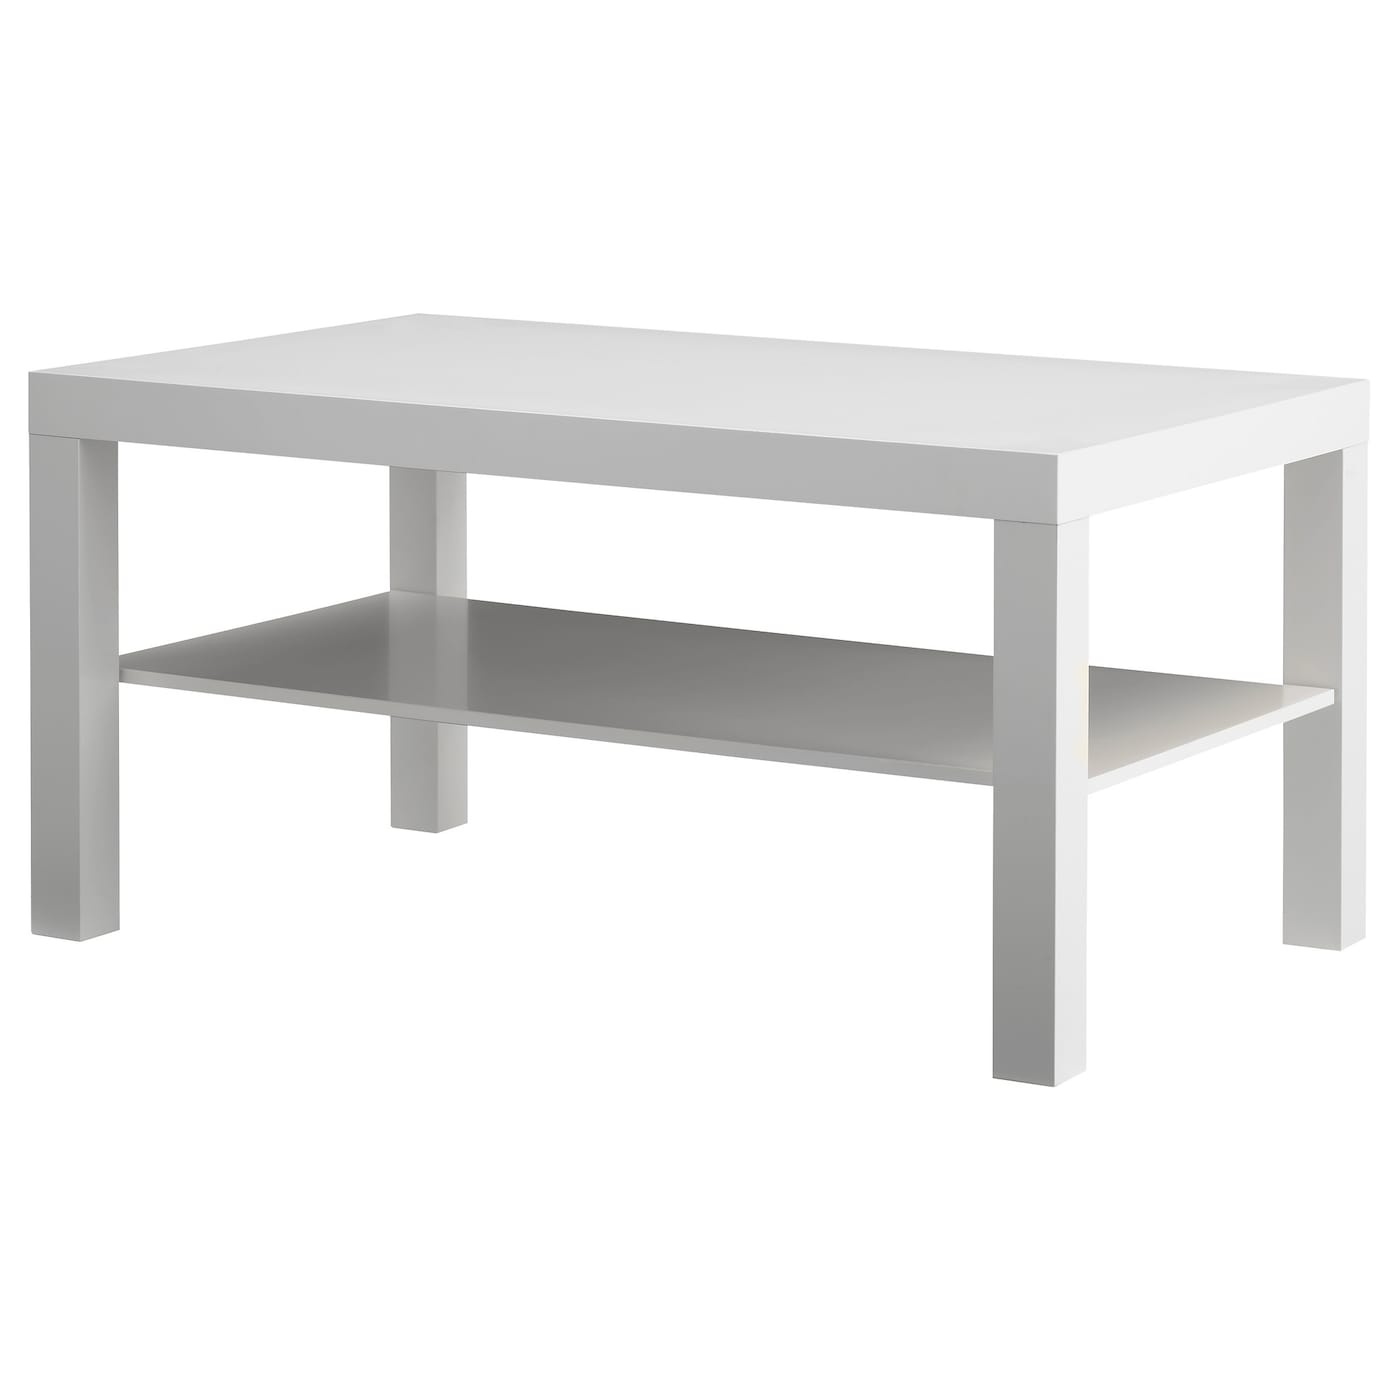 Lack coffee table white 90x55 cm ikea - Table basse escamotable ikea ...